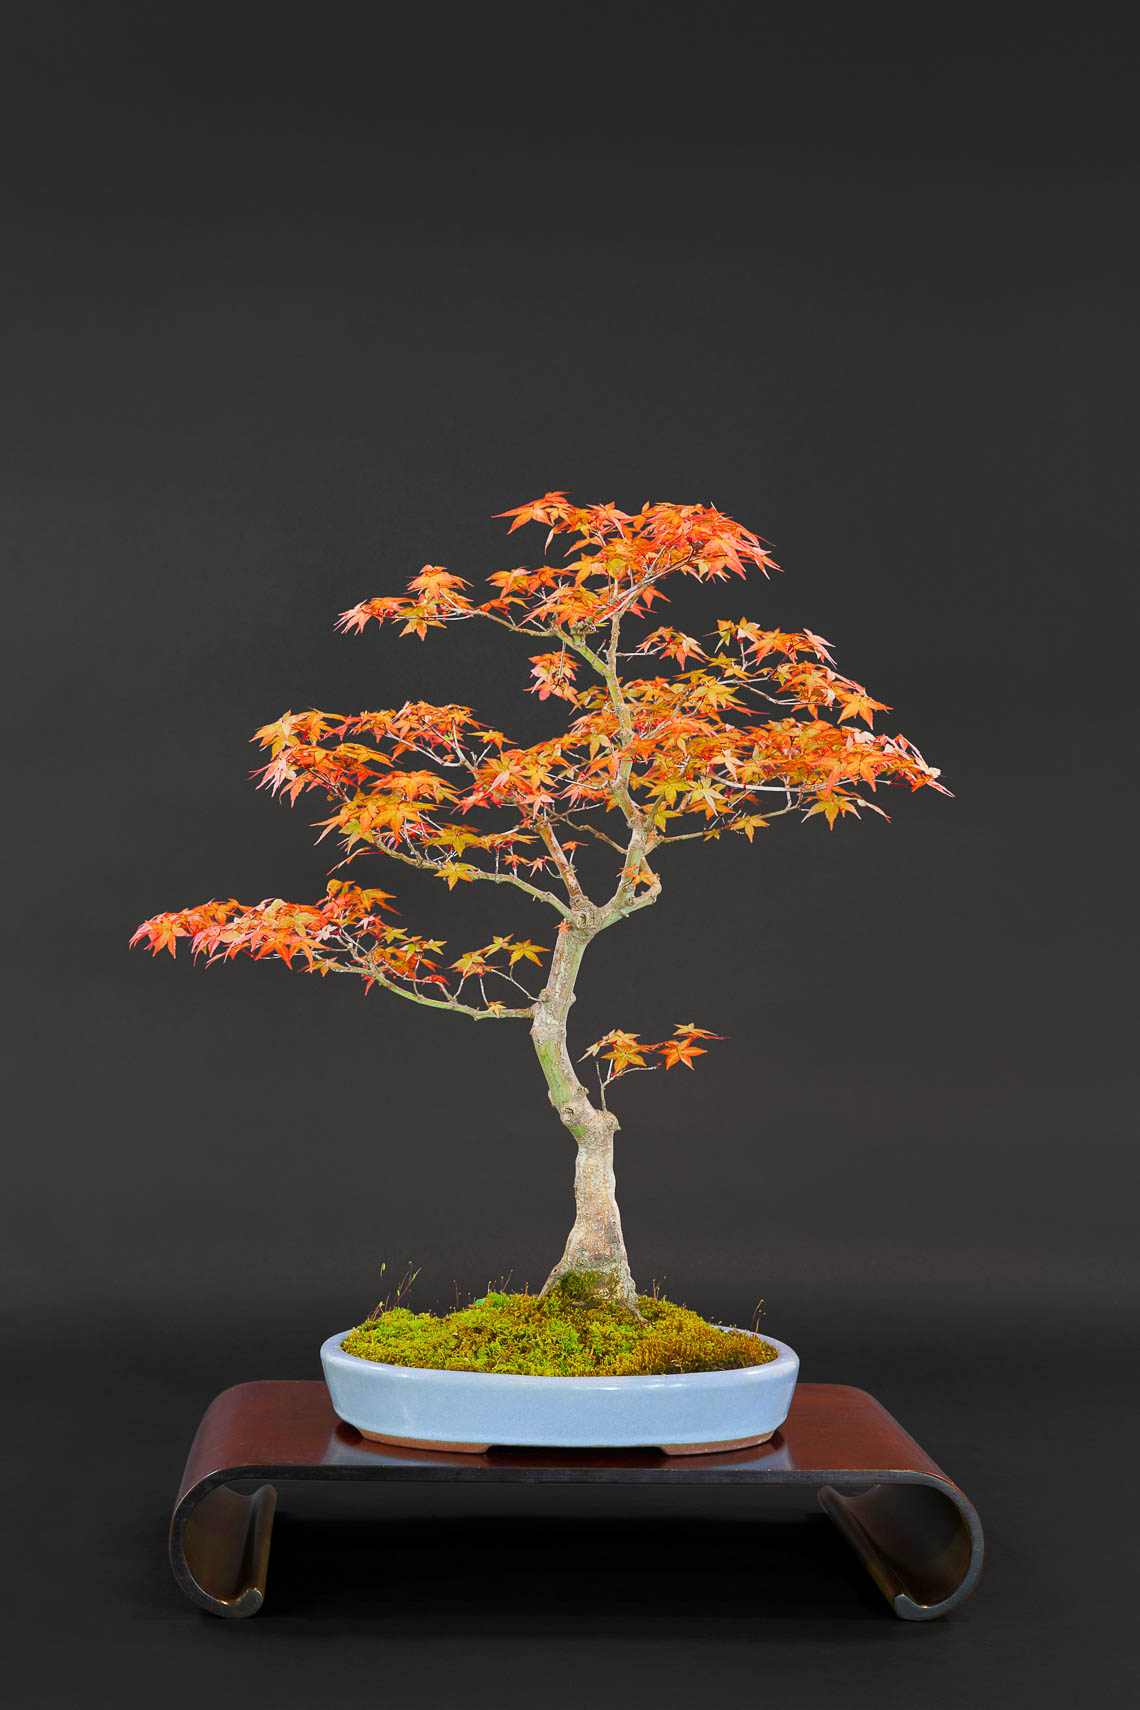 20180422_Bonsai-127-edit